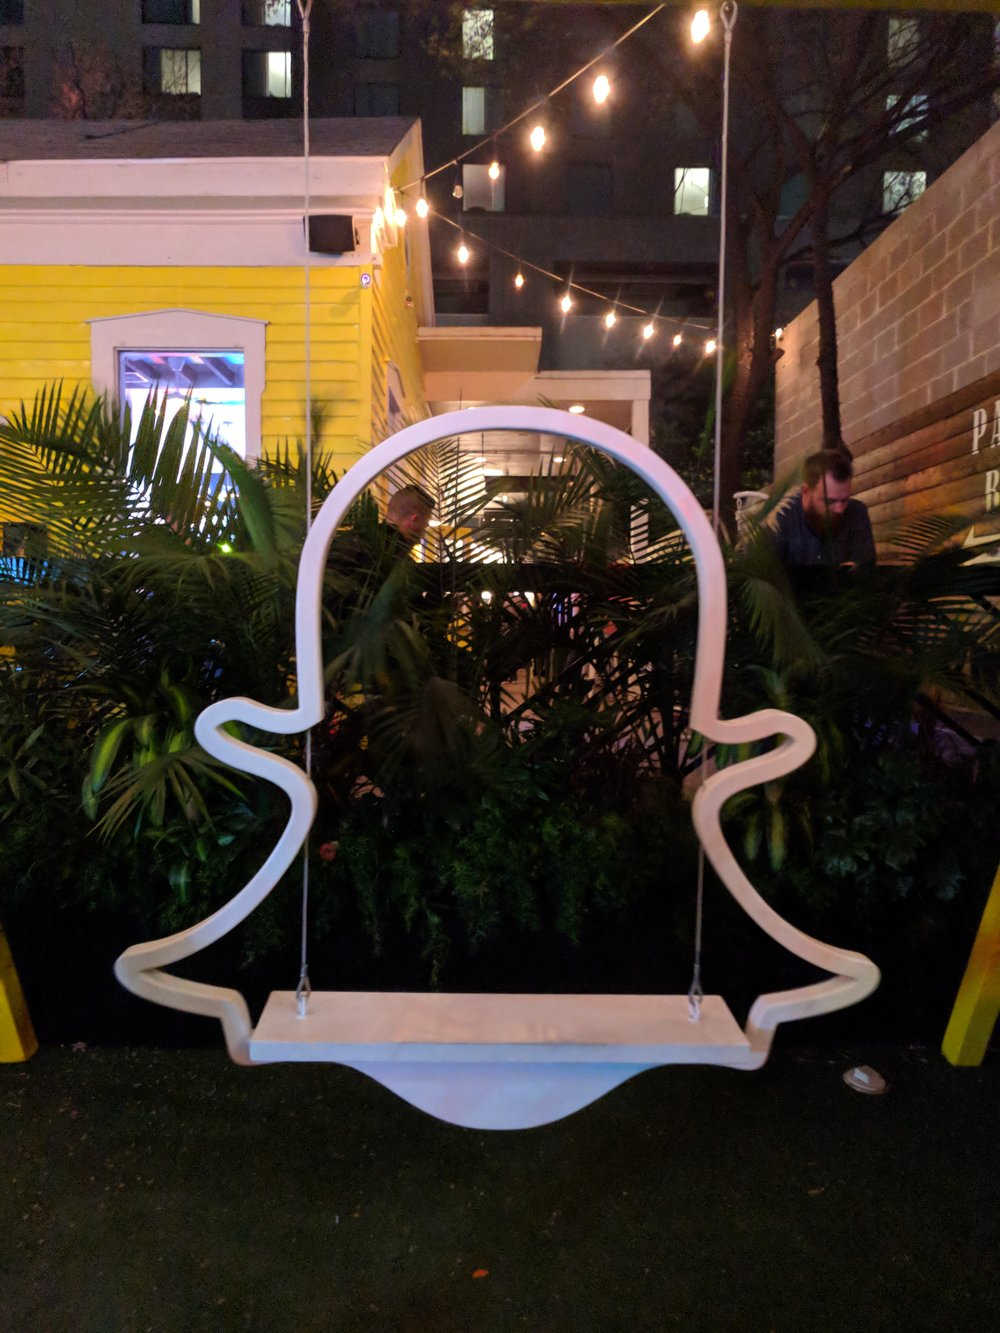 Snapchat at SXSW 2019 - #Snaphouse didn't disappoint!